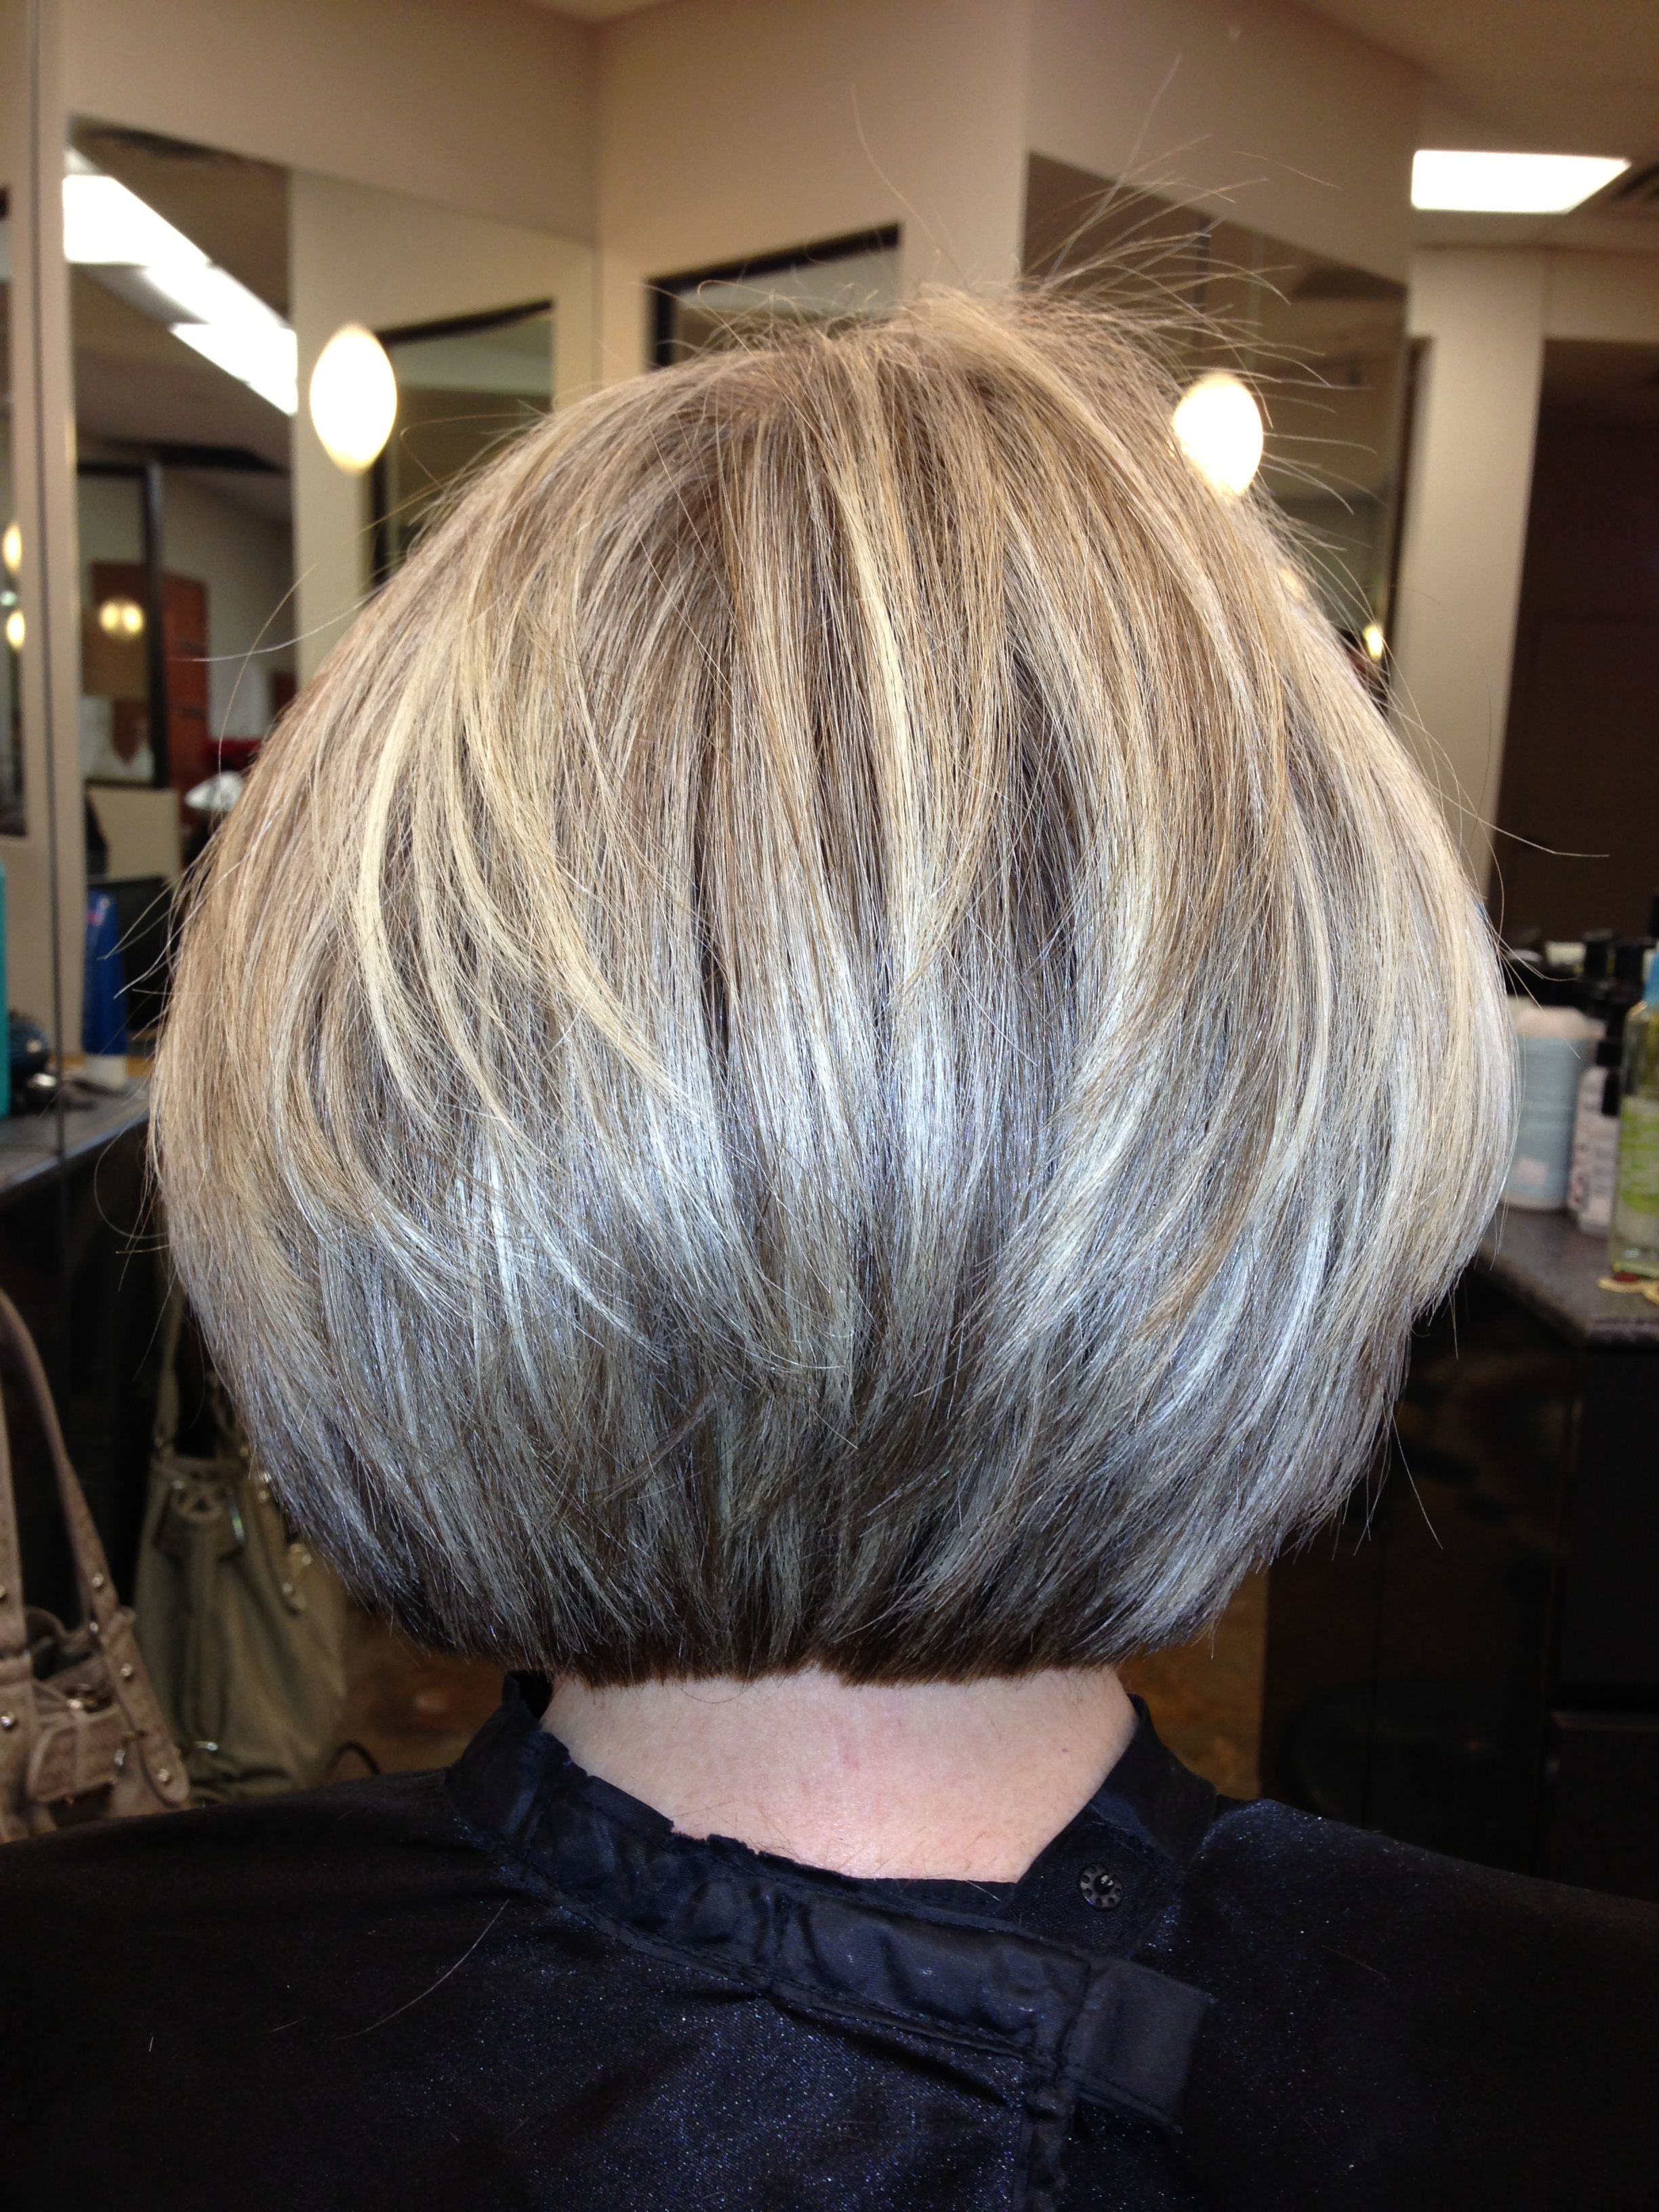 Blunt Yet Layered, Texturized Cut | Cool Hair Cuts!!!!!patricia Intended For Gray Bob Hairstyles With Delicate Layers (View 15 of 20)